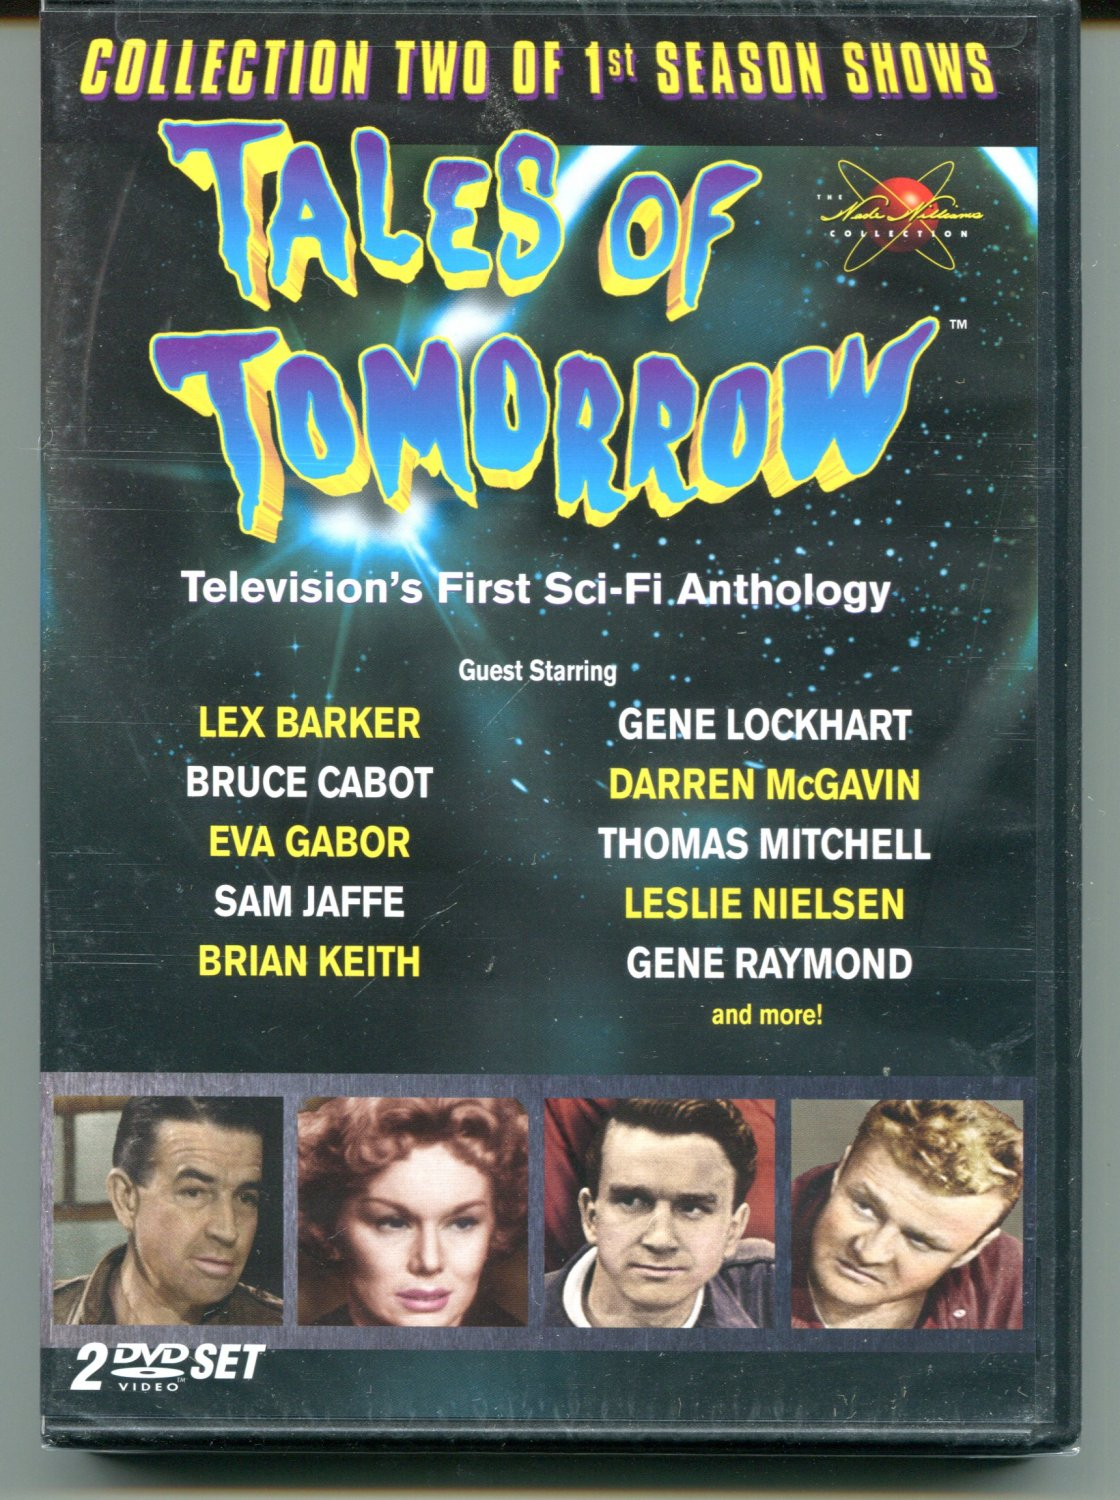 Tales of Tomorrow-Collection 2, 1st season (DVD 1951-1952)